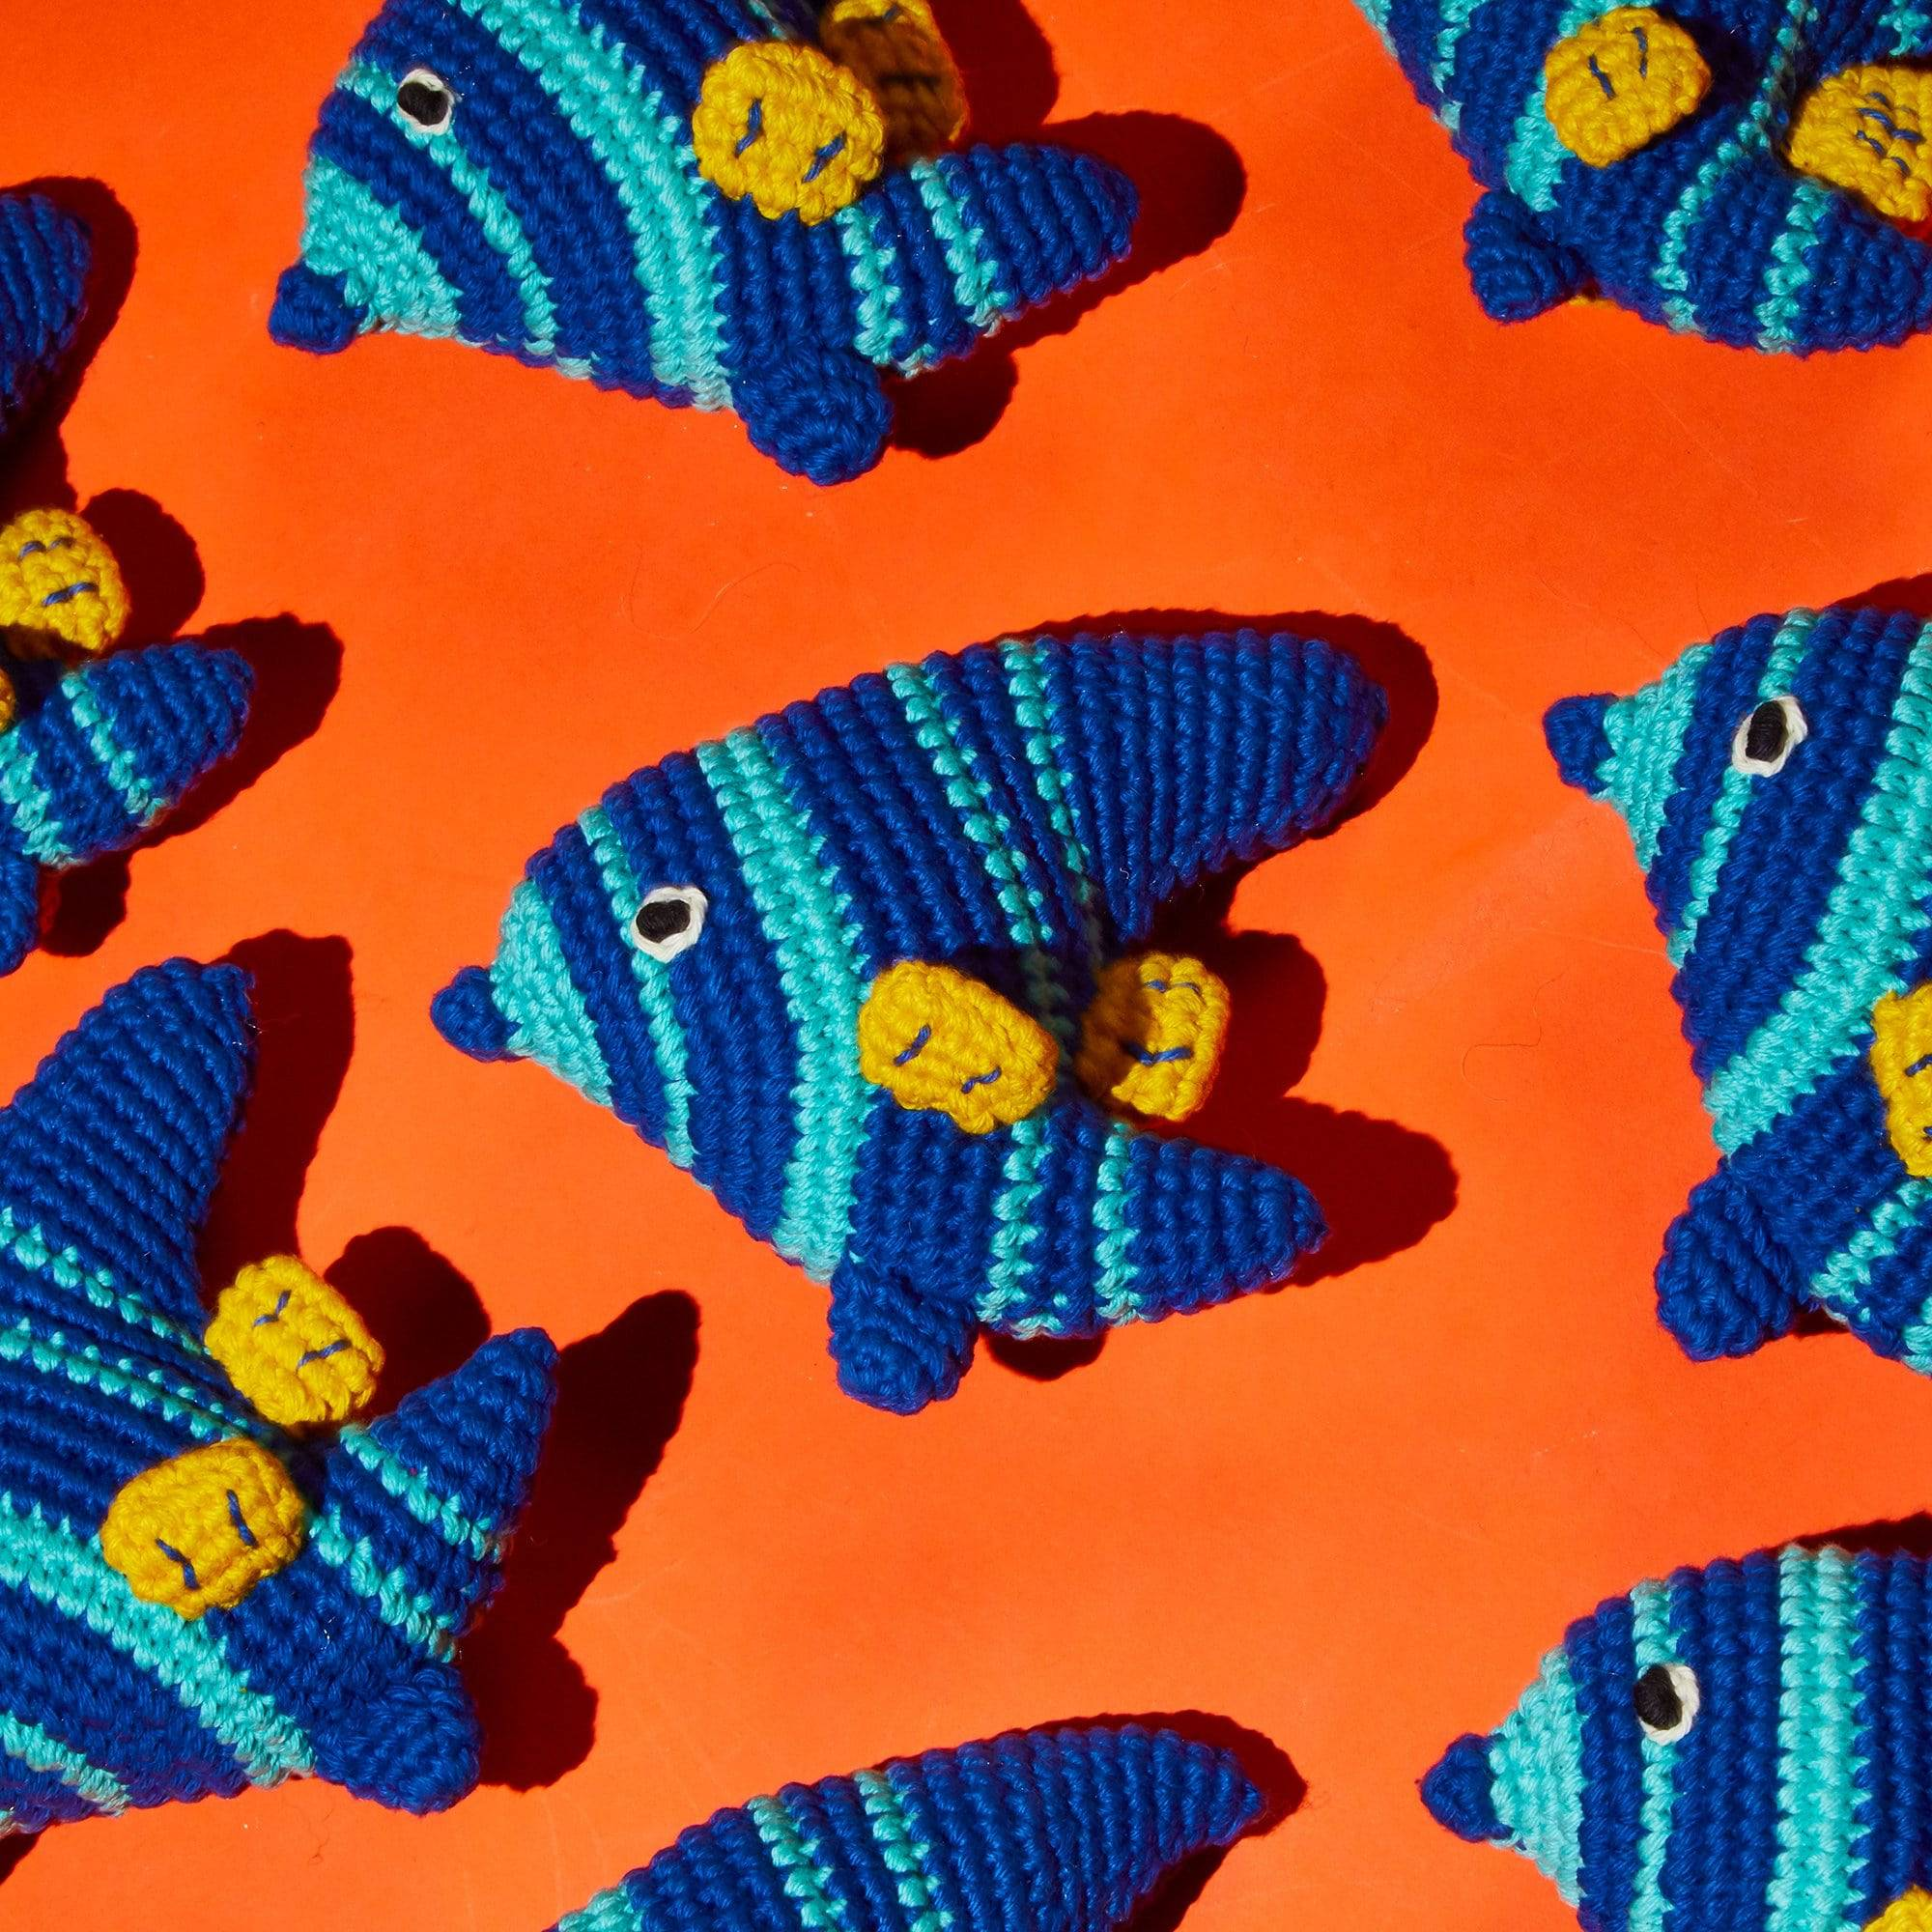 Fish Crochet Toy - [Holler Brighton]